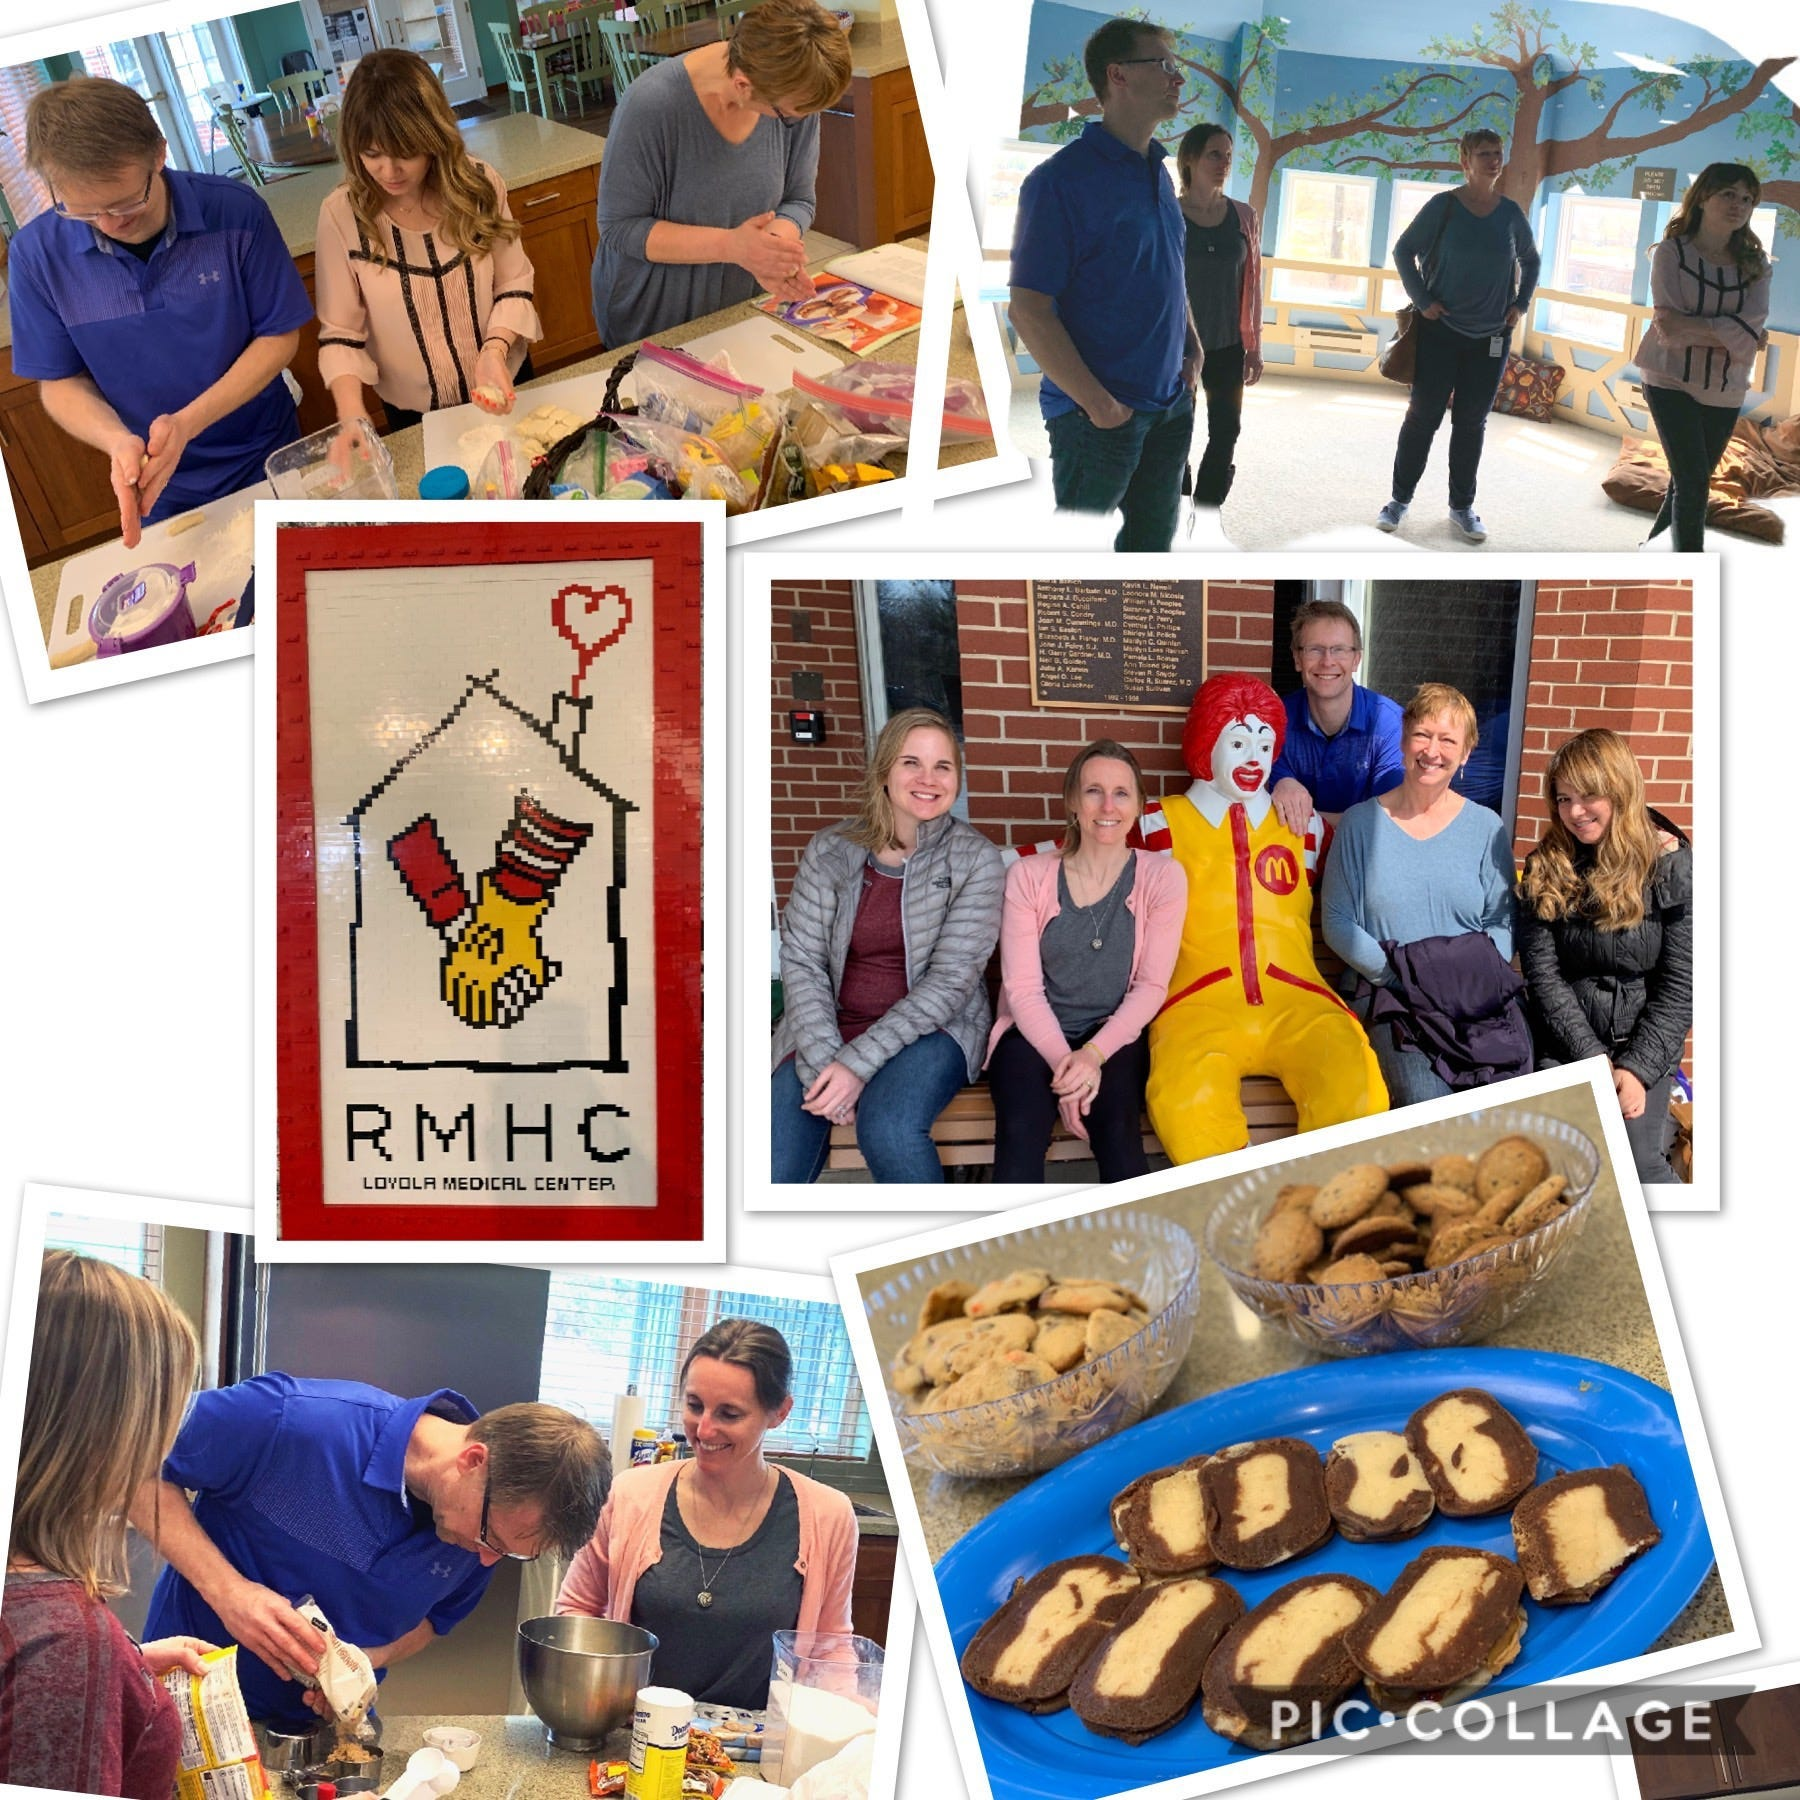 a group volunteering making cookies at a Ronald McDonald House